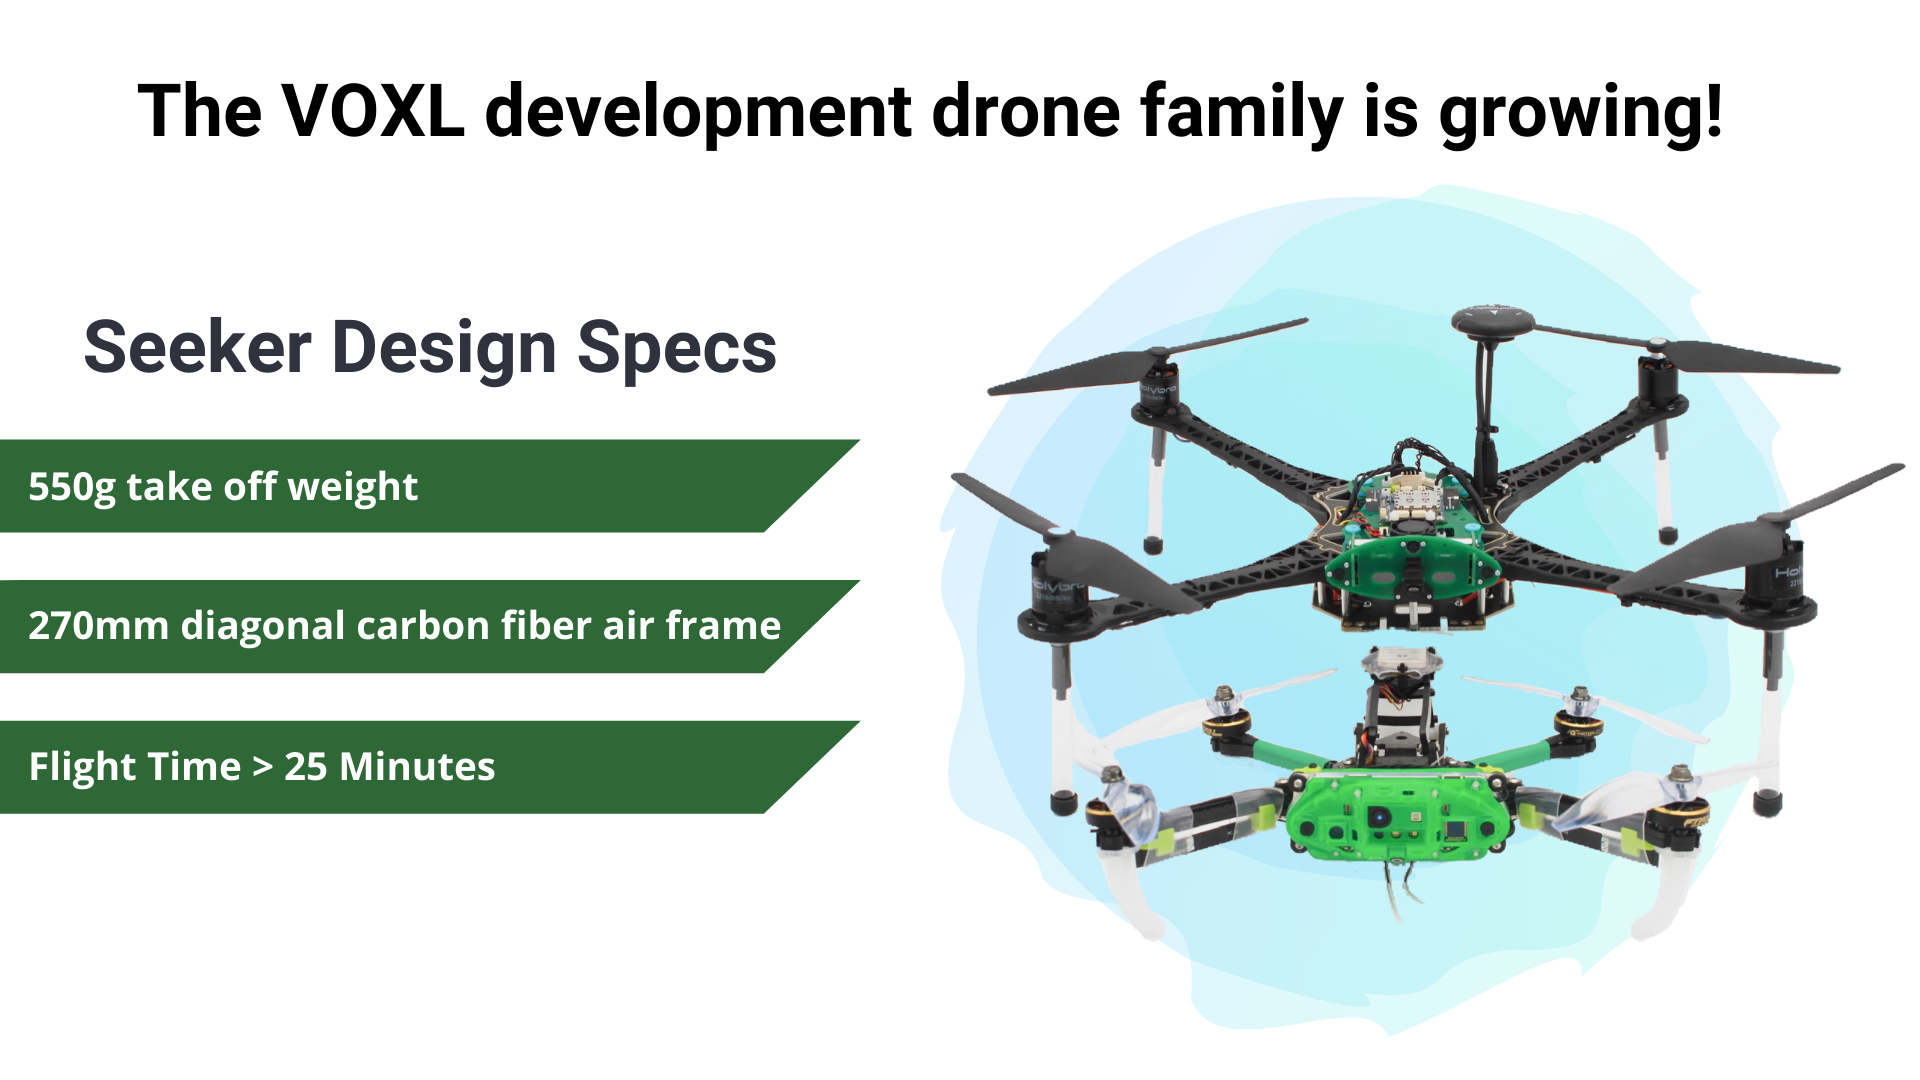 The VOXL development drone family is growing! Seeker design specs - 550g take off weight - 270mm diagonal carbon fiber air frame - Flight time > 25 minutes